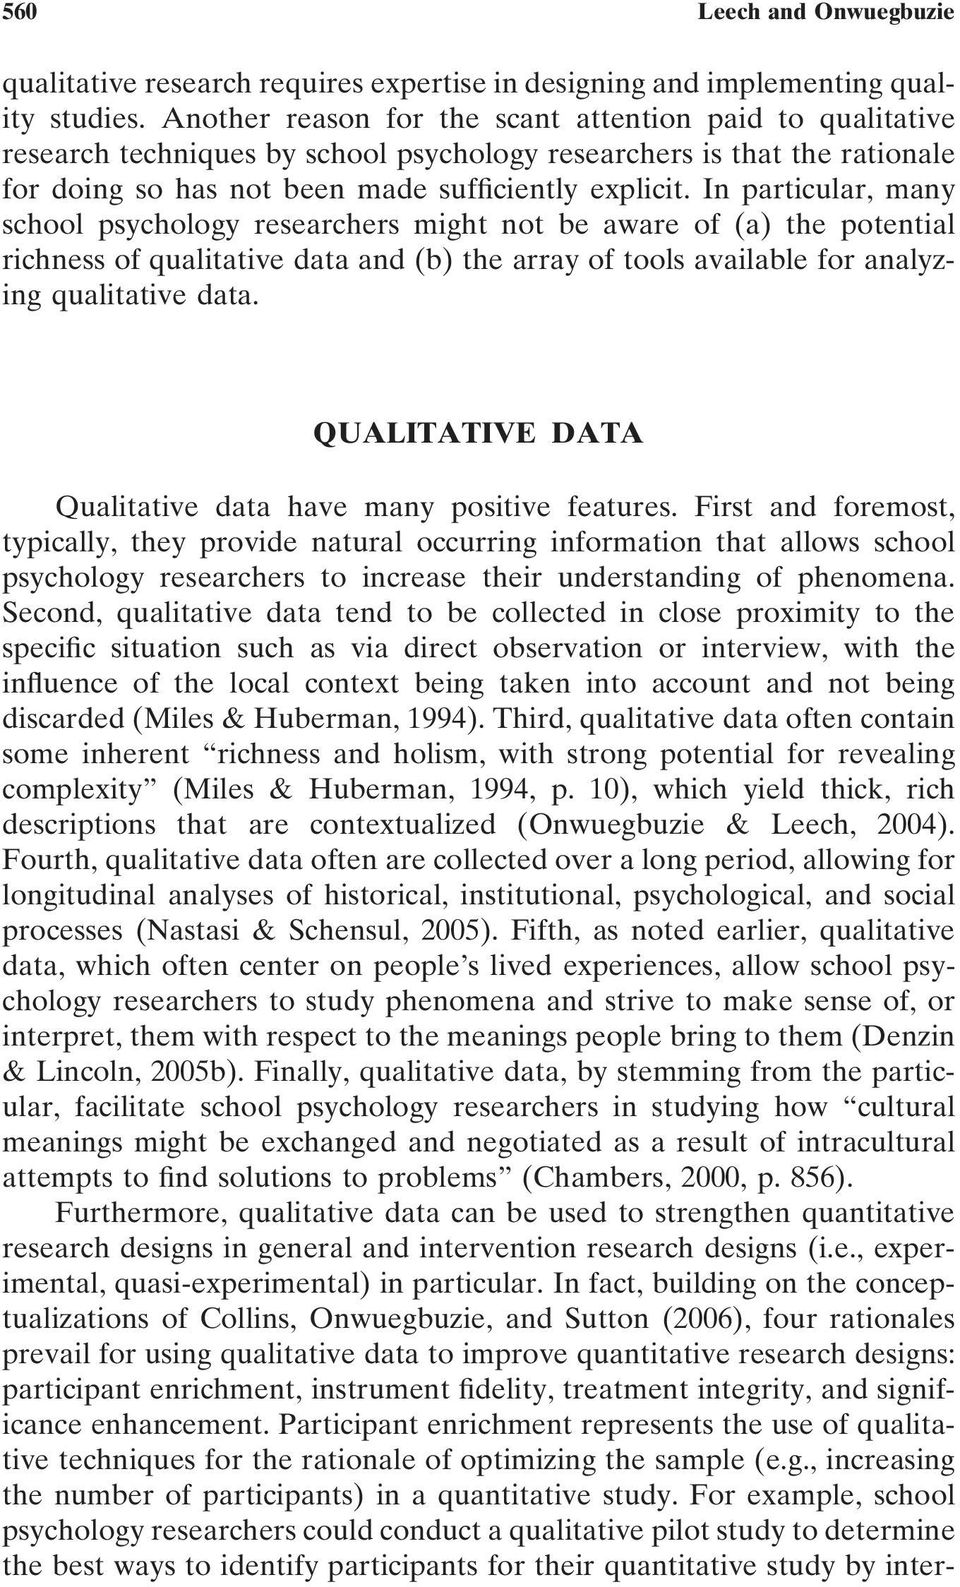 In particular, many school psychology researchers might not be aware of (a) the potential richness of qualitative data and (b) the array of tools available for analyzing qualitative data.